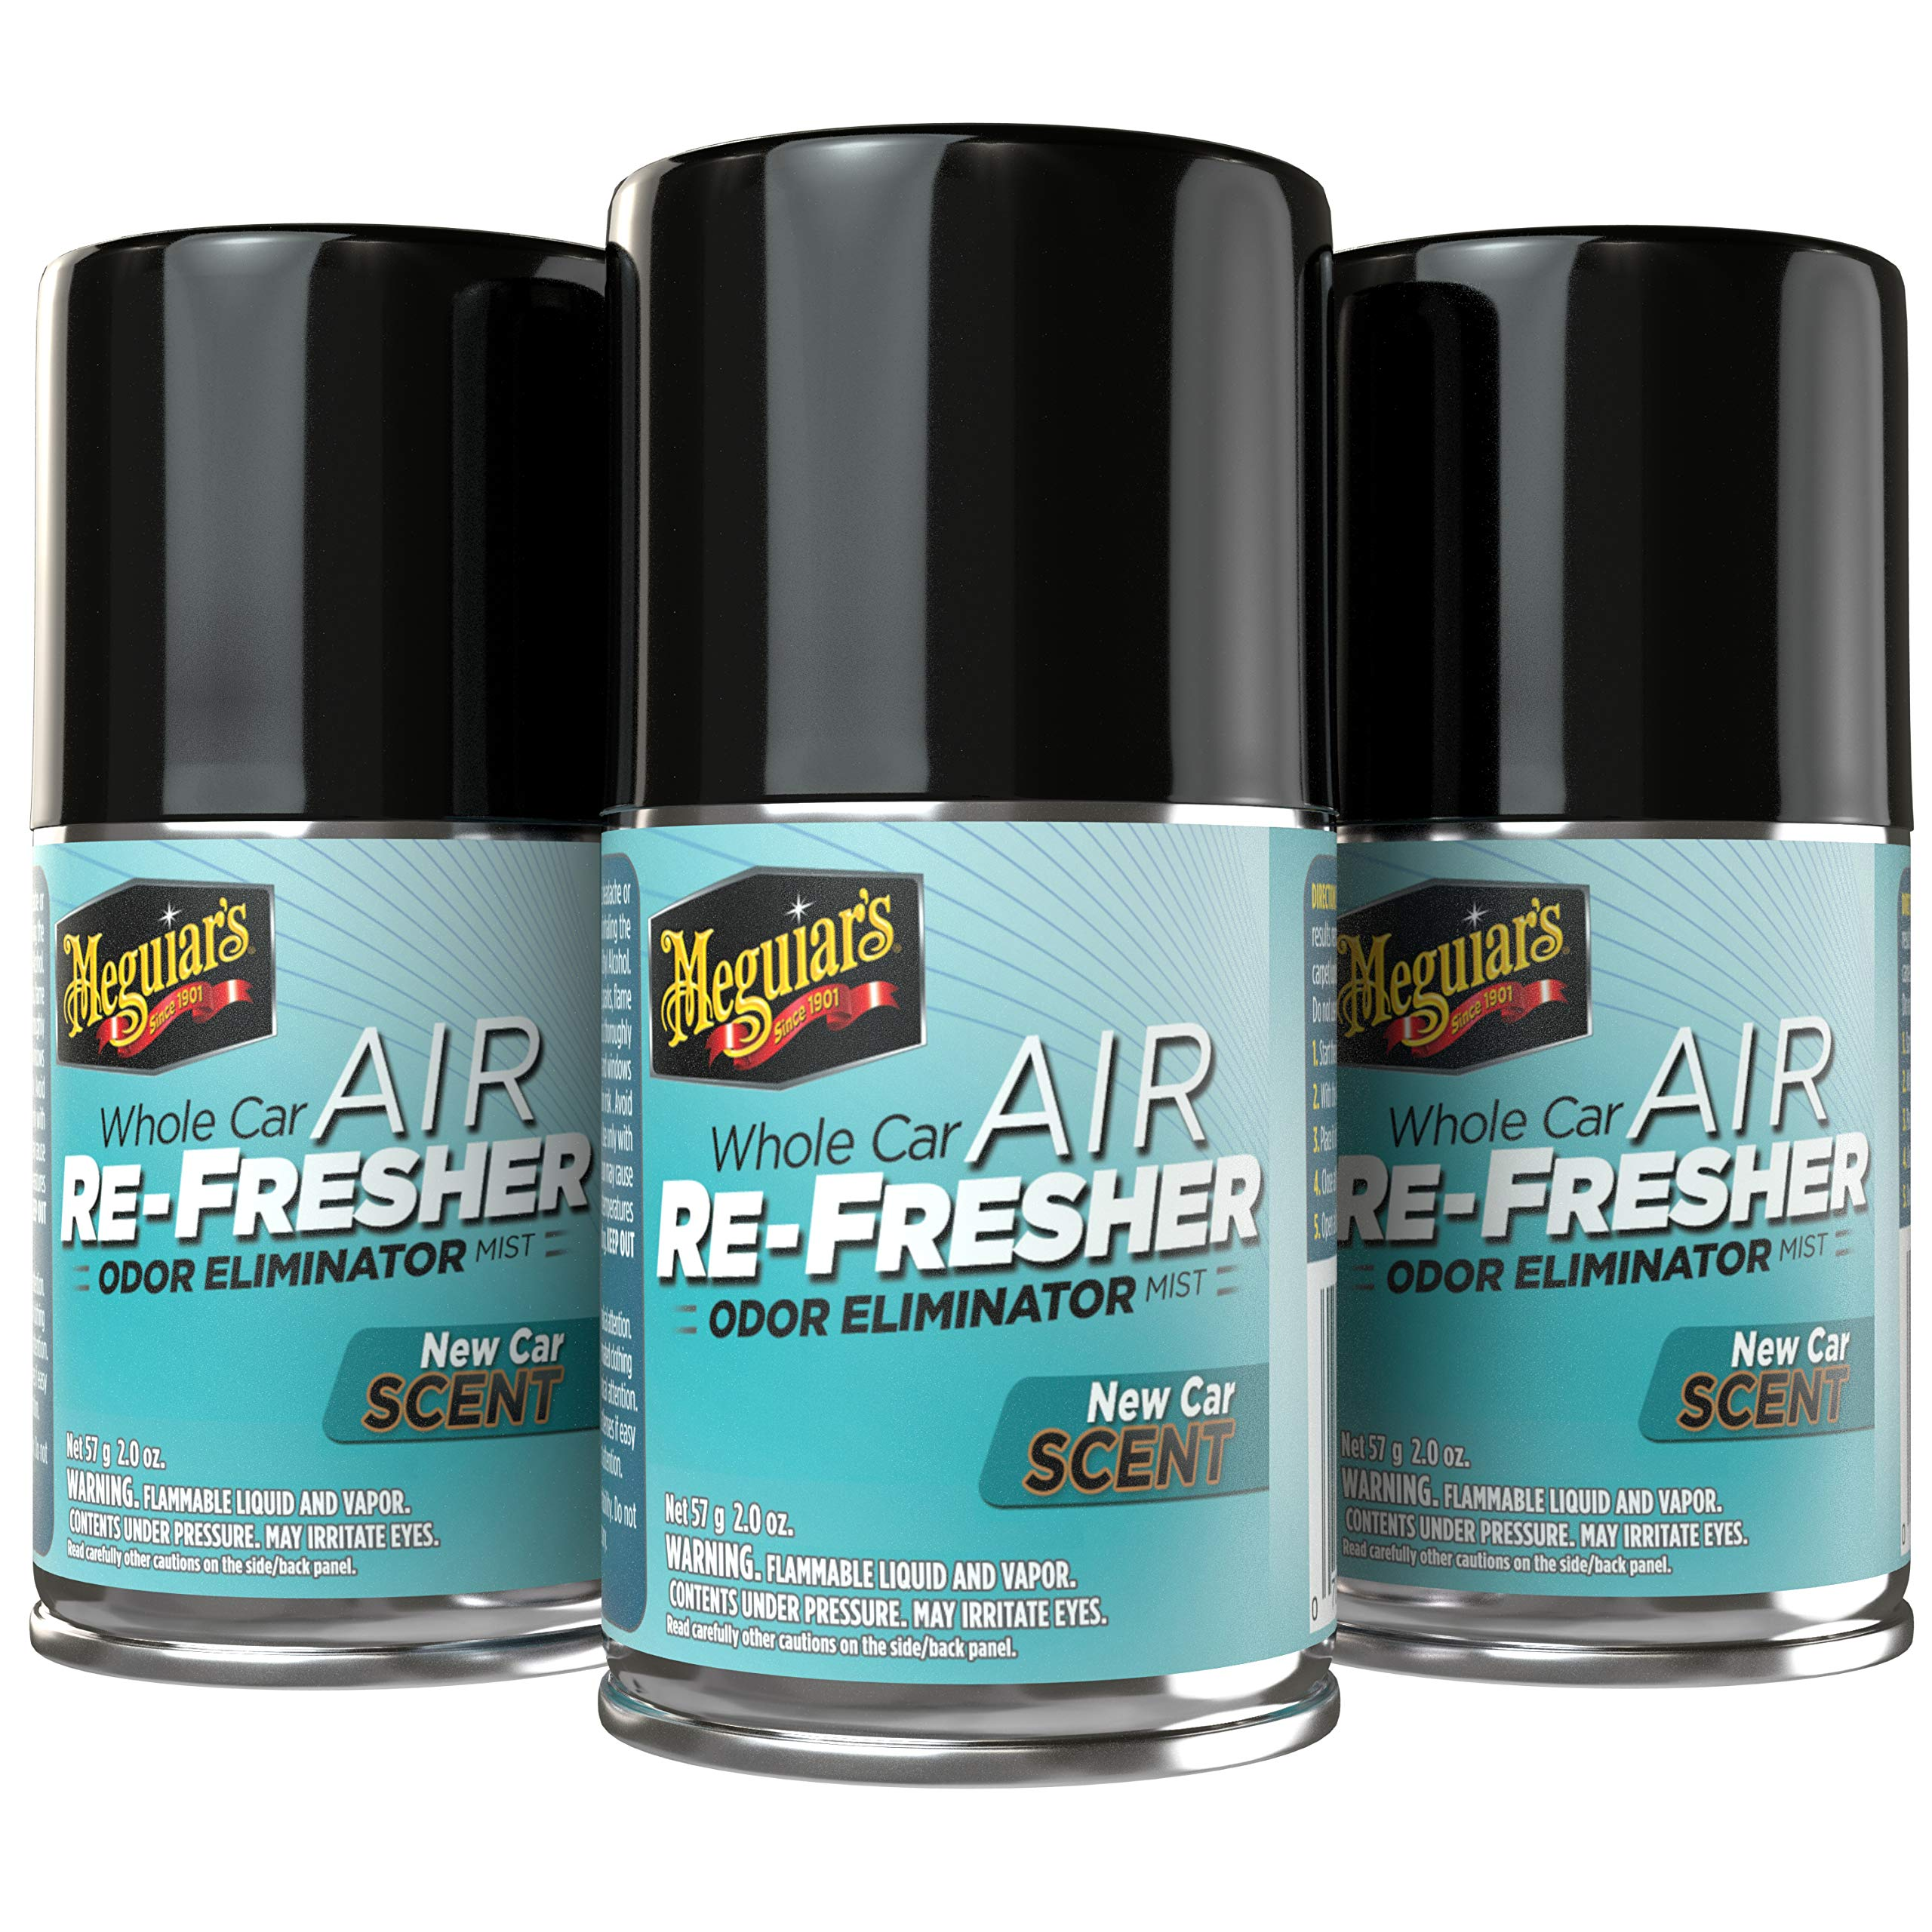 Meguiar's G16402PK3 New Car Air Re-Fresher, 3-Pack, 6. Fluid_Ounces